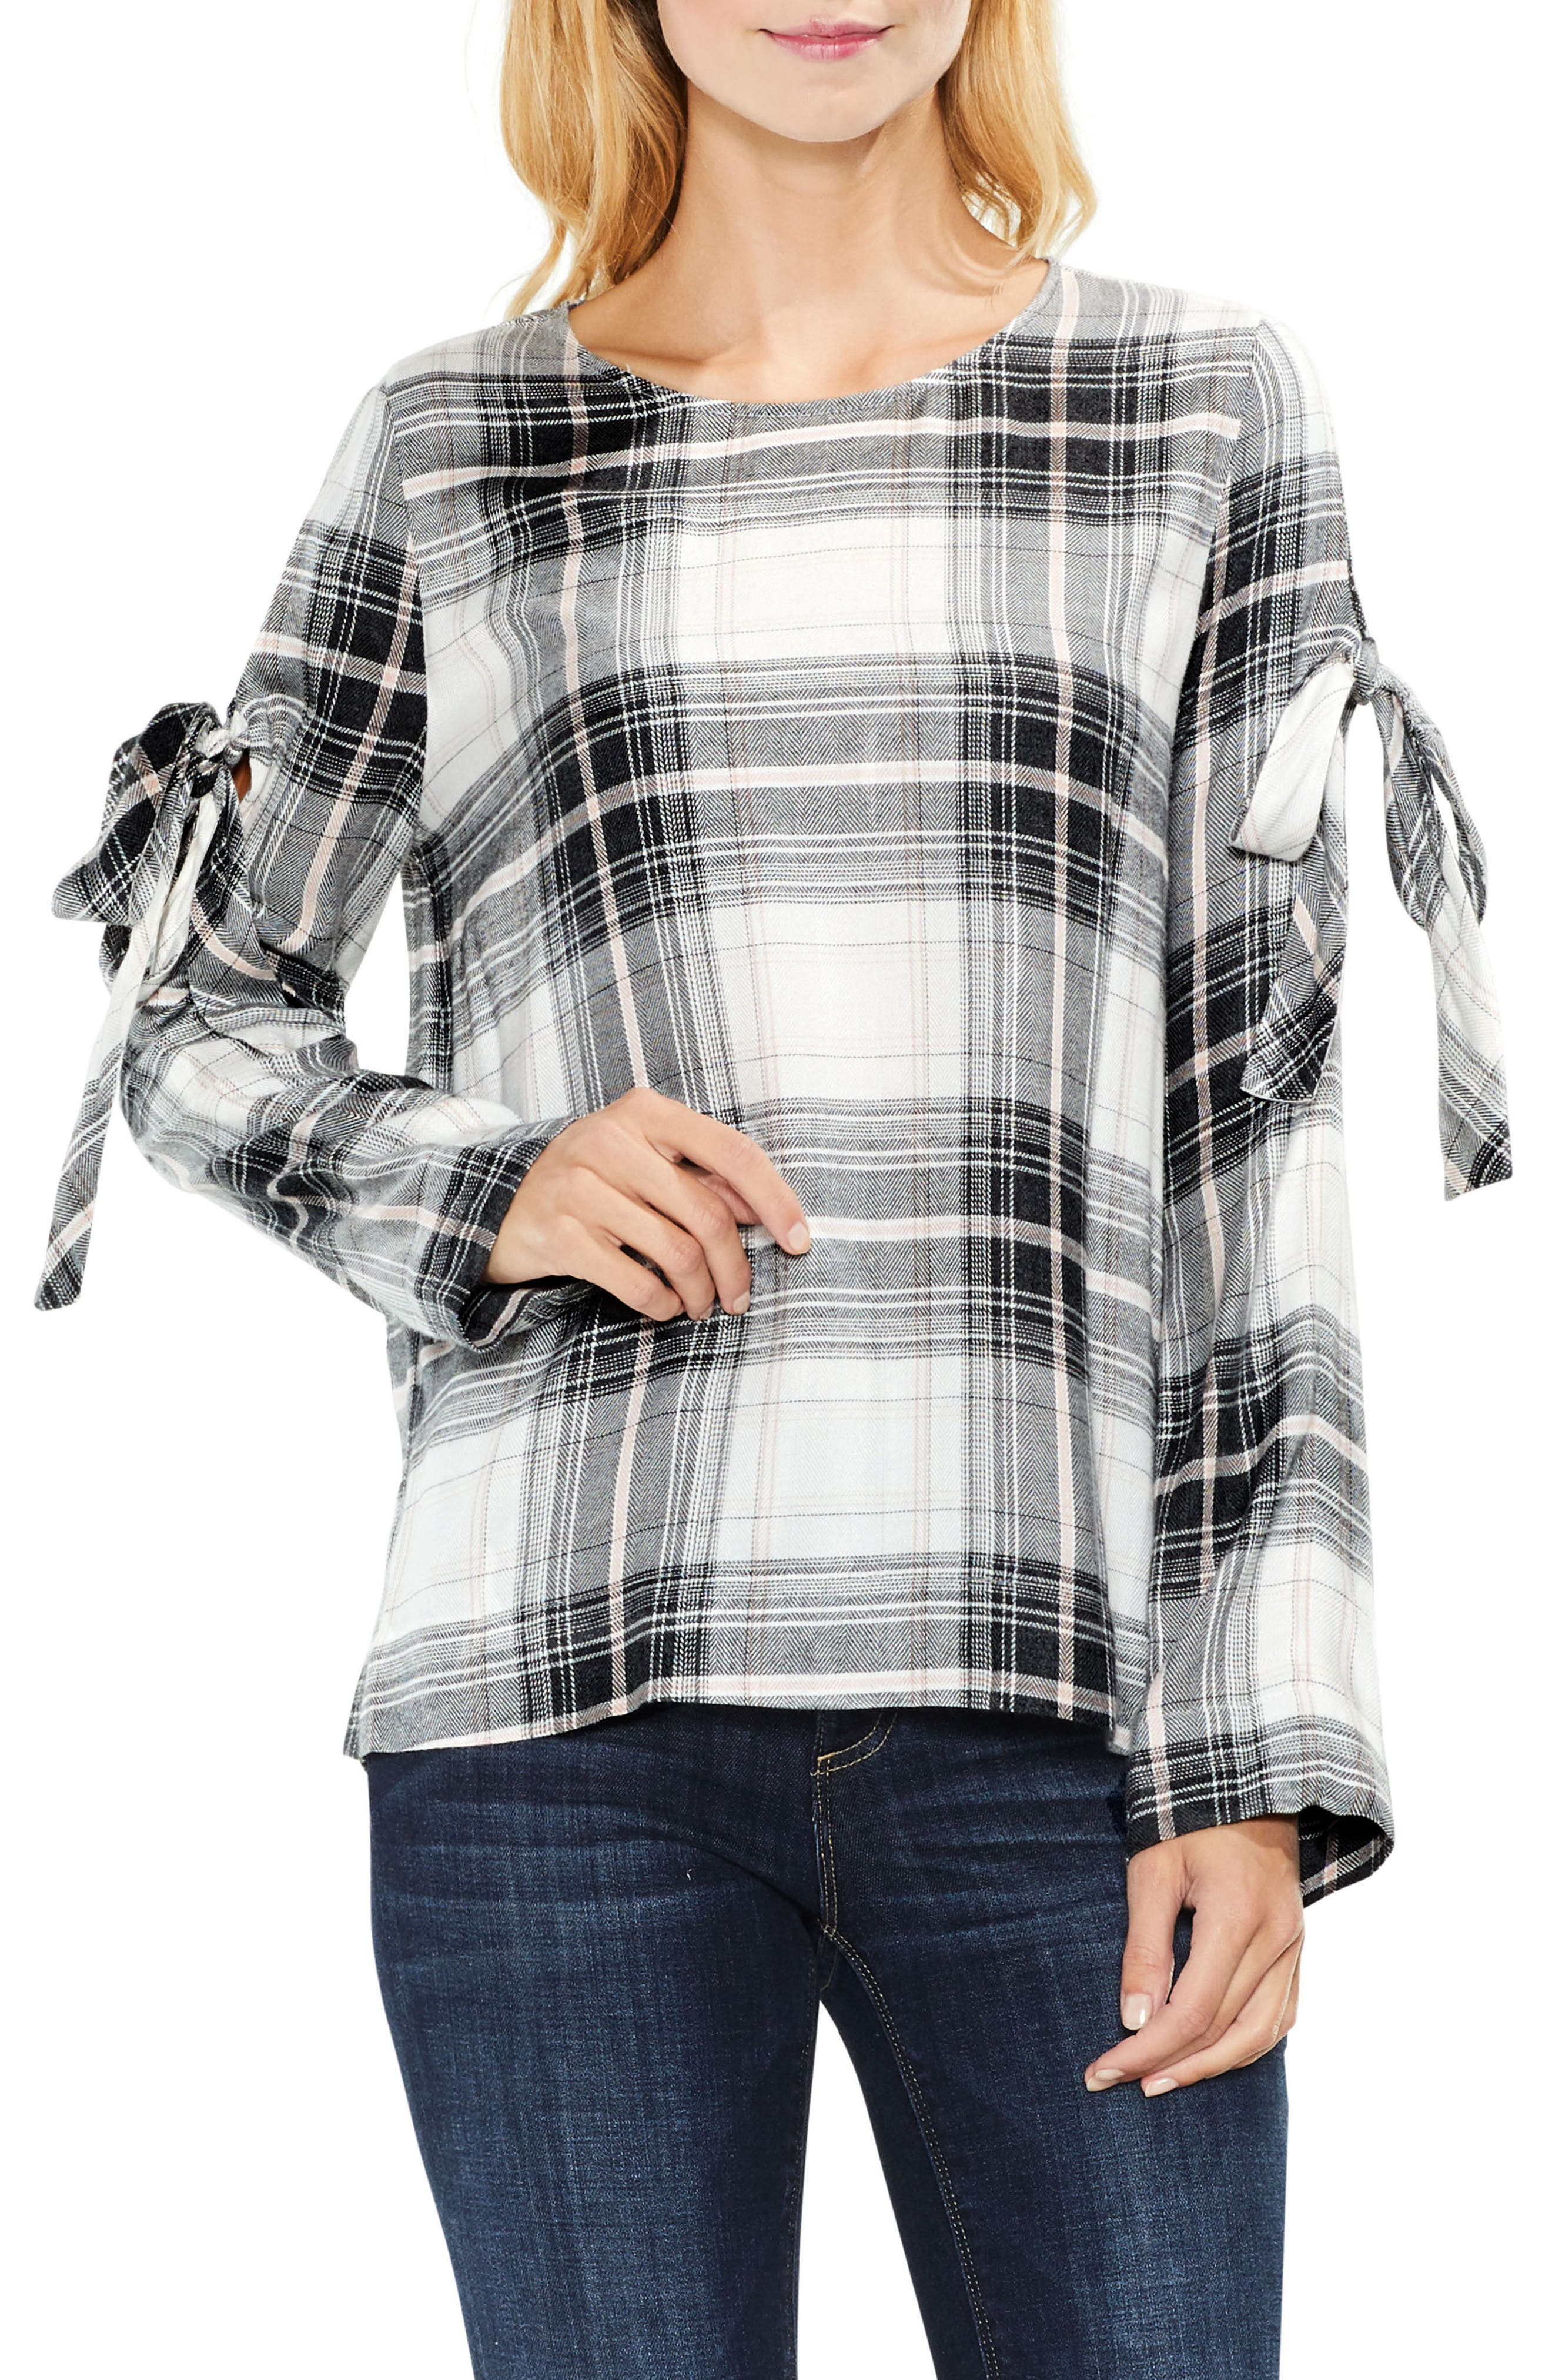 Main Image - Two by Vince Camuto Linearscape Plaid Tie Sleeve Blouse